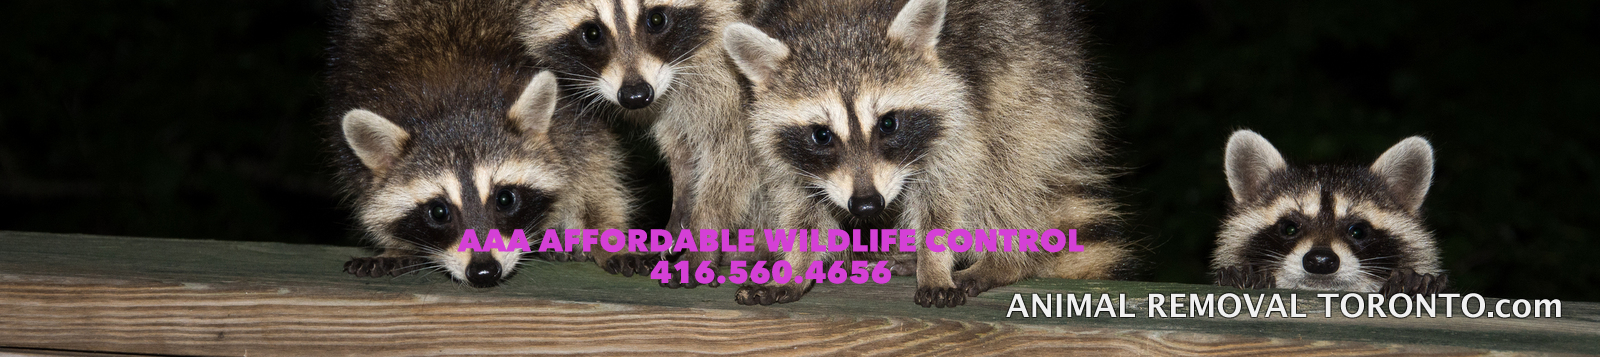 Raccoon Removal Toronto - Affordable Raccoon Removal Tips